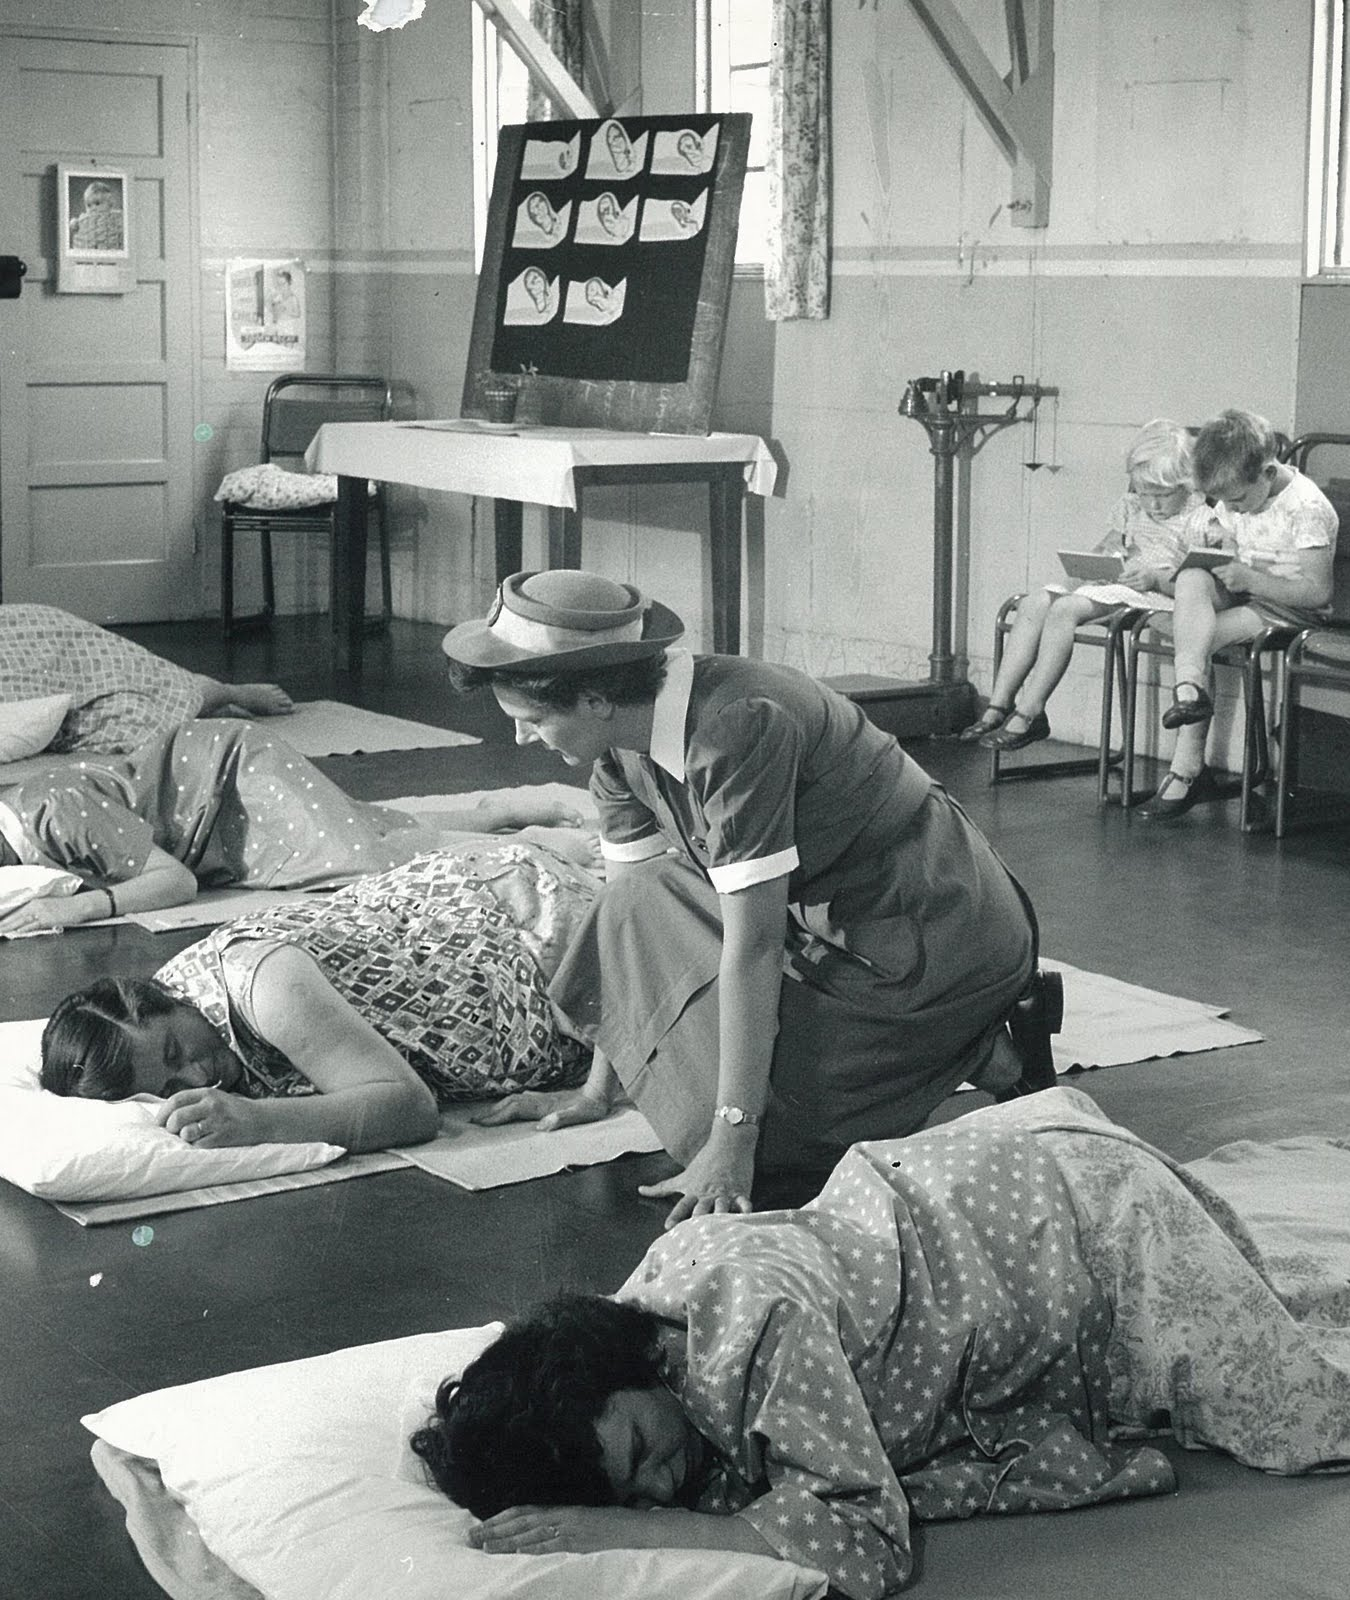 19th Century Midwives